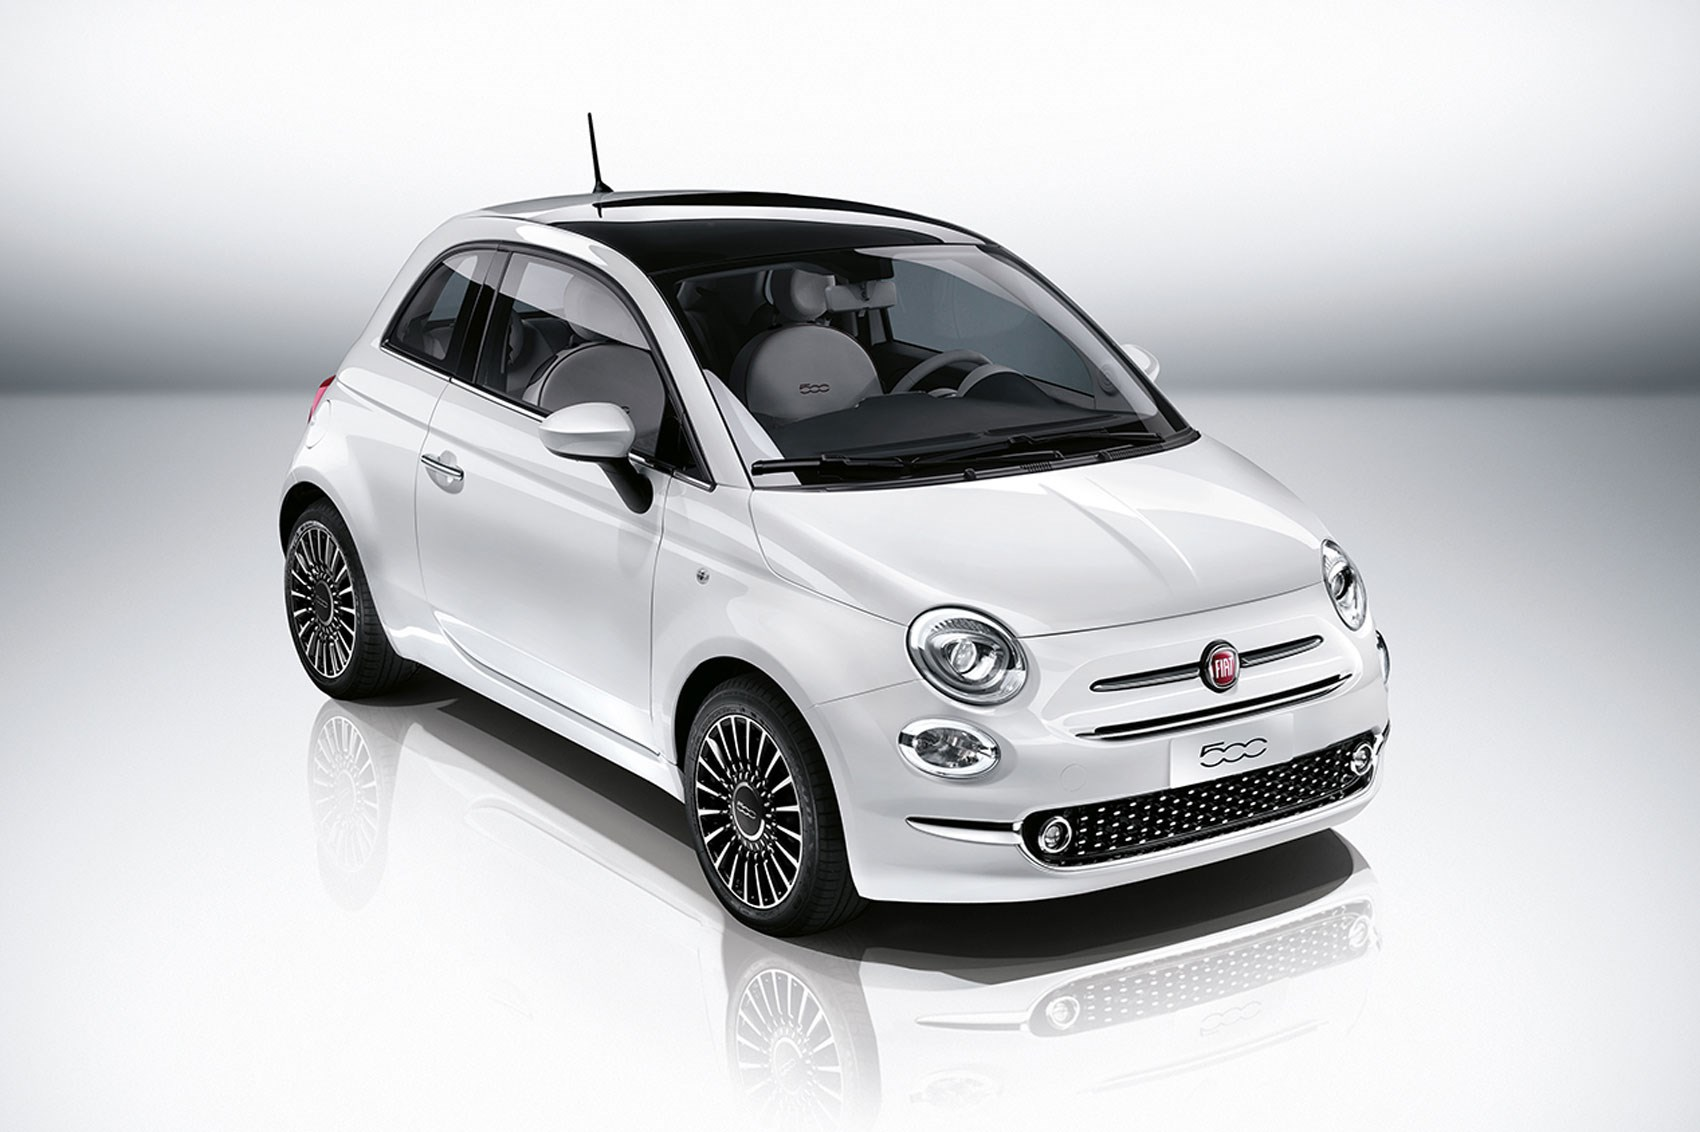 fiat 500 2016 facelift revealed first official pics of 500 s new look car magazine. Black Bedroom Furniture Sets. Home Design Ideas